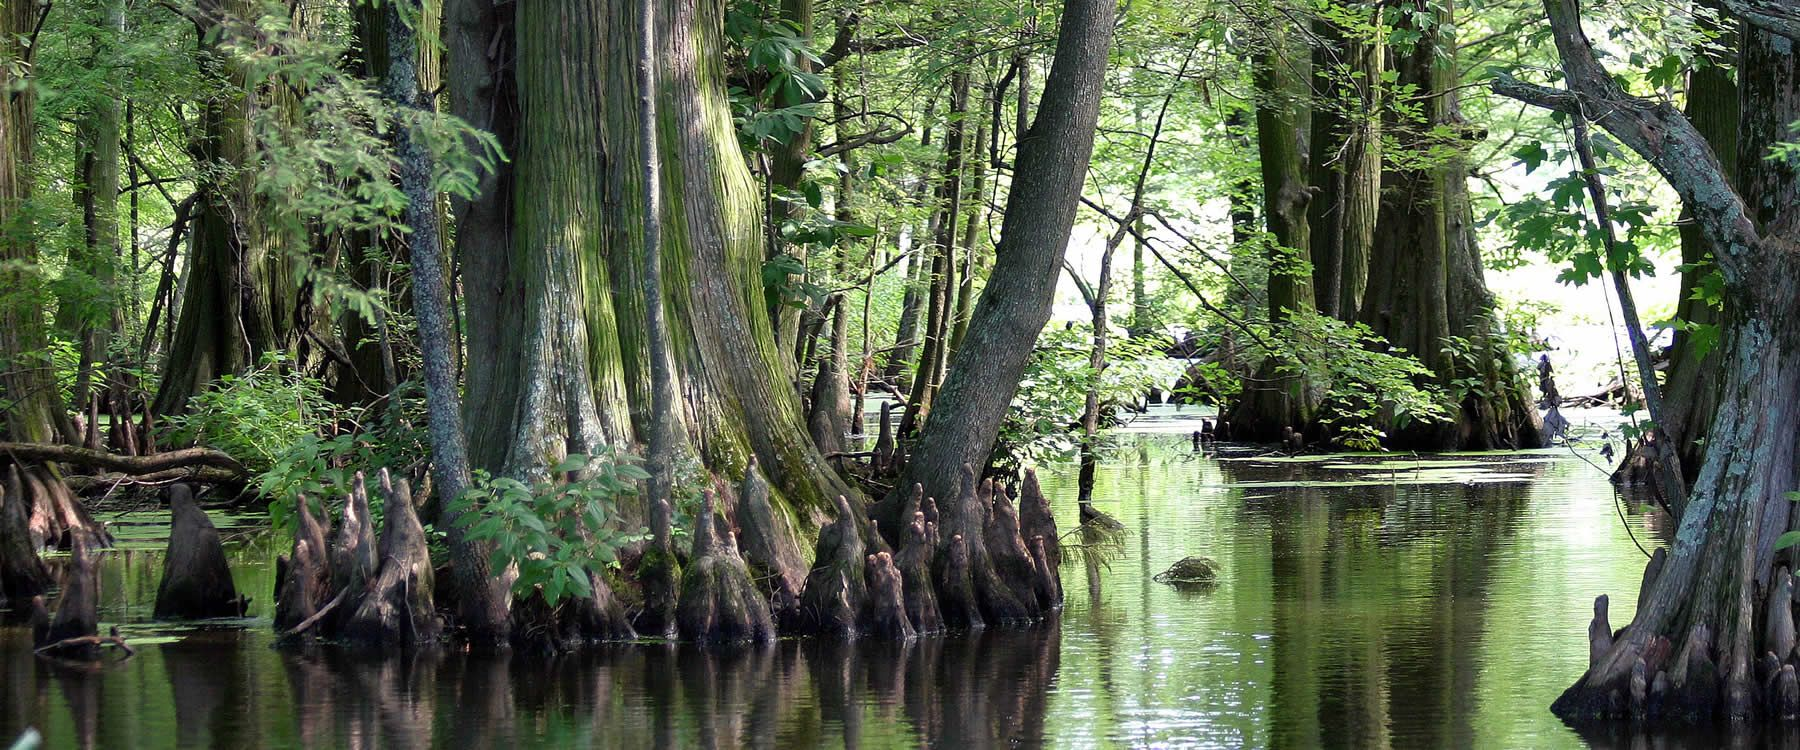 Image from http://reelfoottourism.com/reelfootlake/wp-content/uploads/2015/05/lgreelfoot02.jpg.